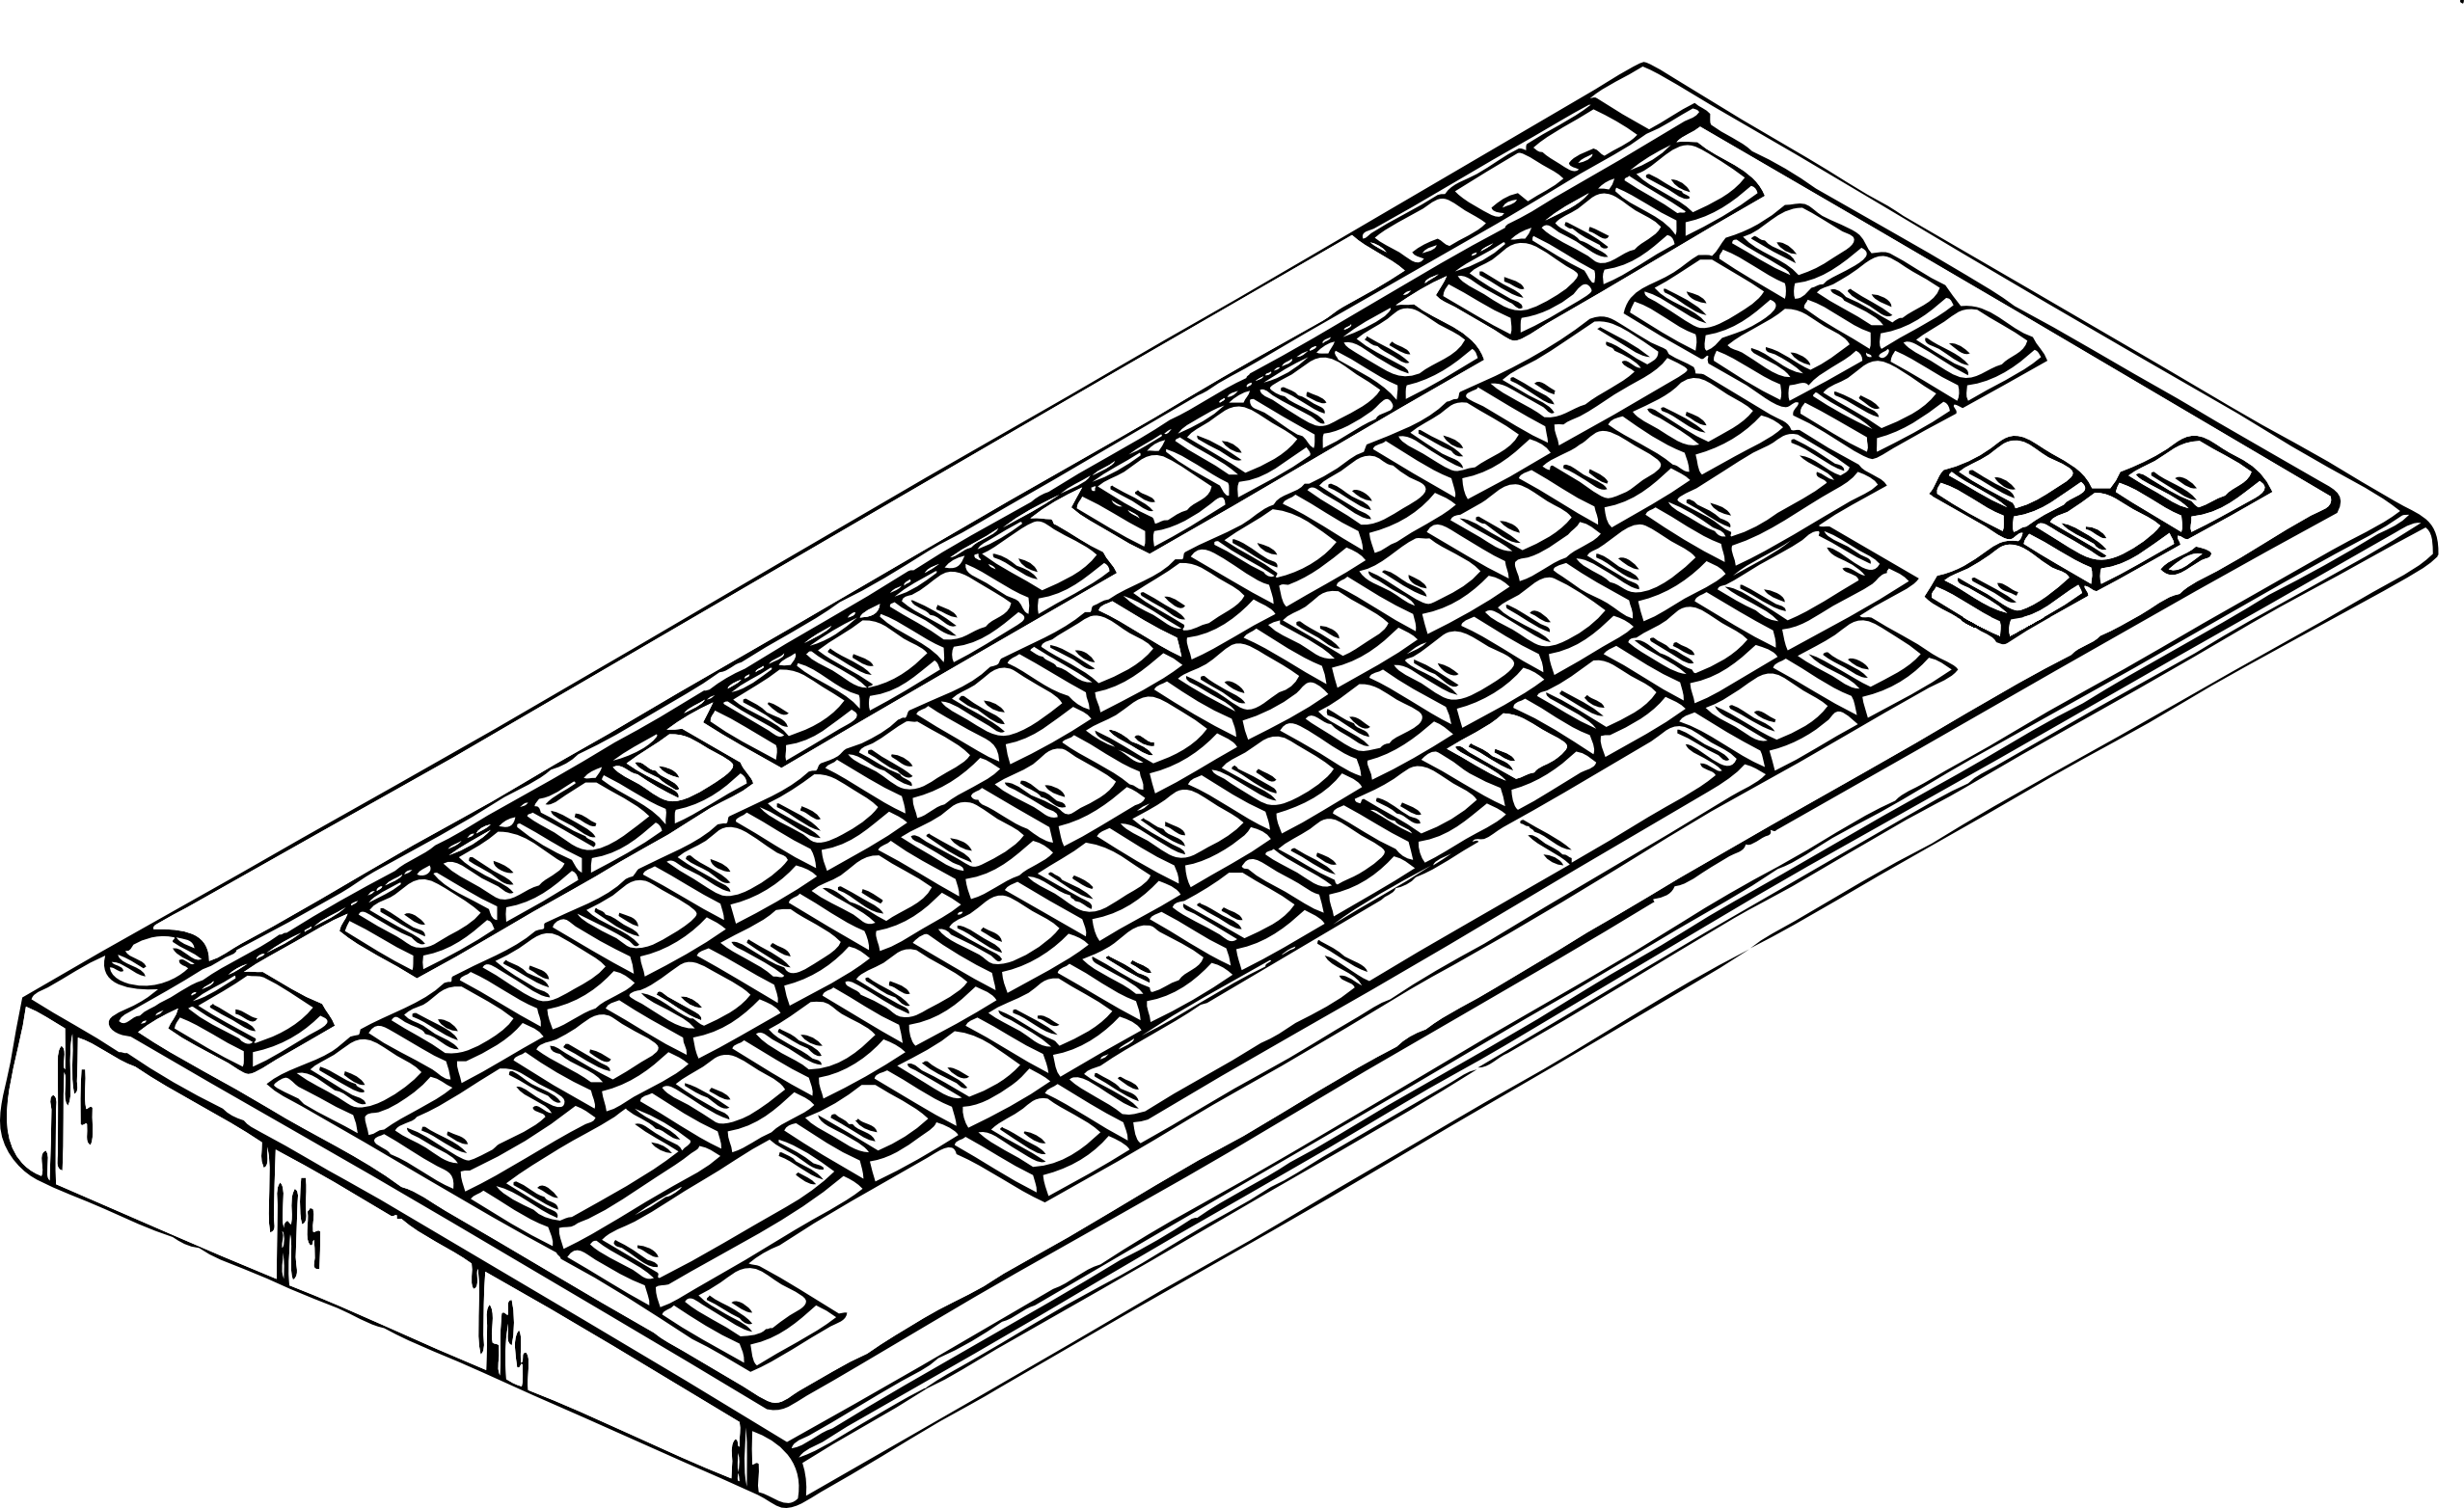 Pin By Clickworks On Colouring Book Keyboard Computer Keyboard Computer